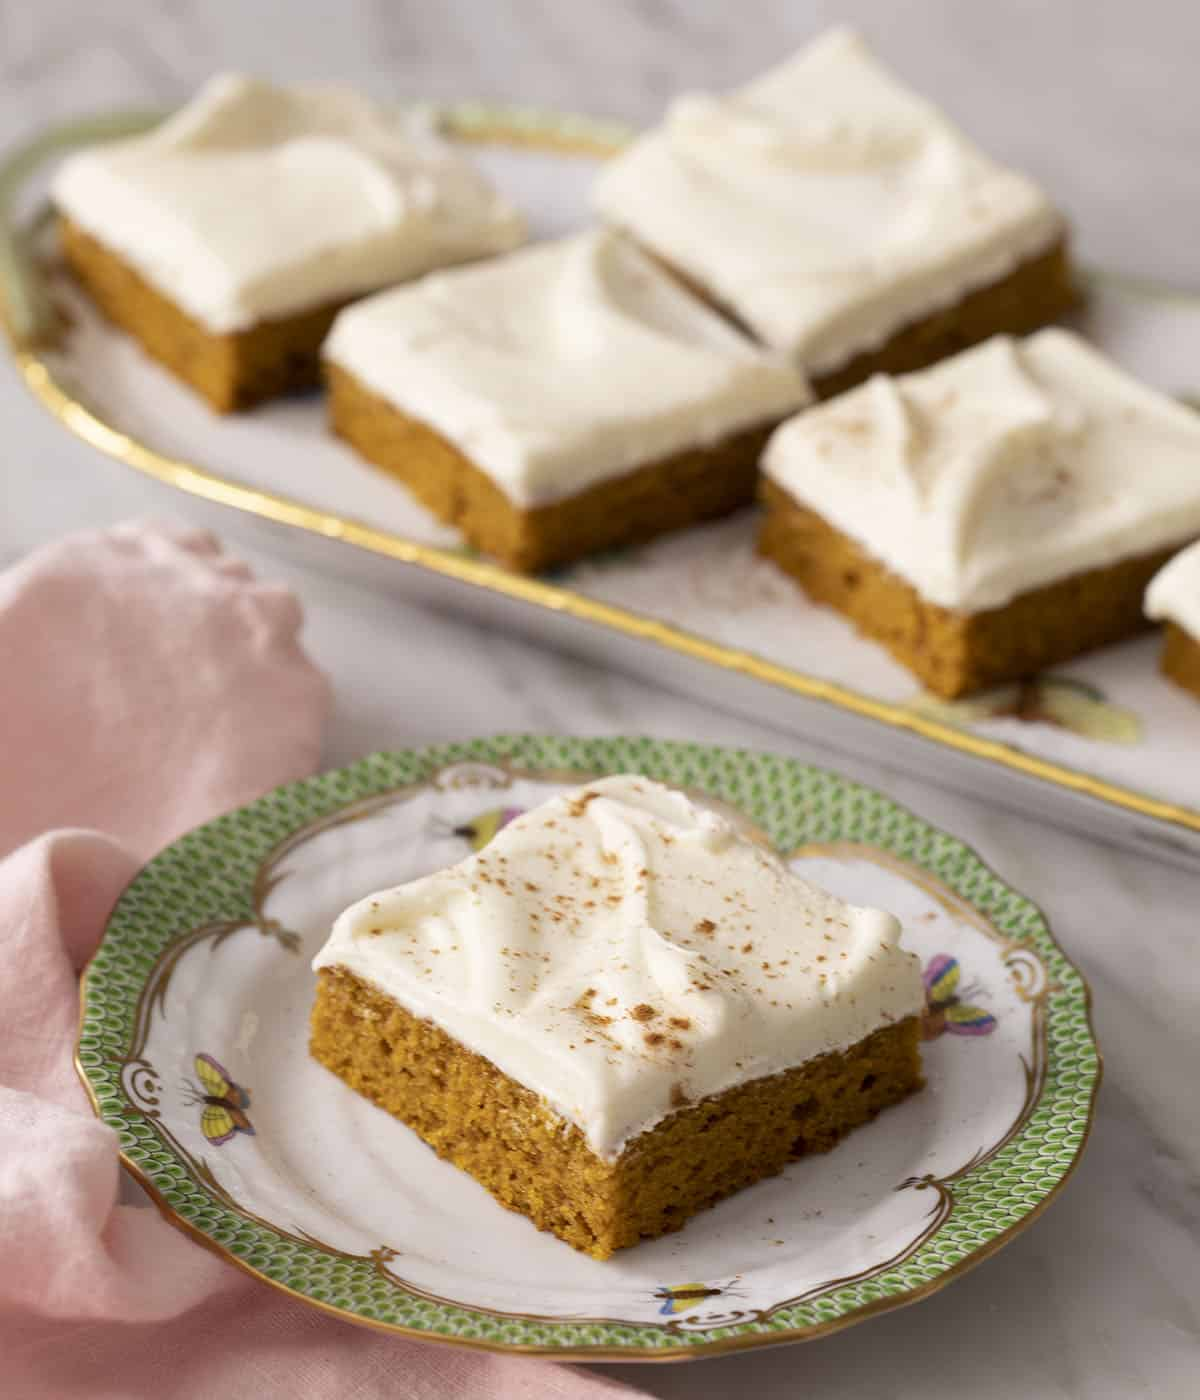 Pumpkin bars on a porcelain serving tray.